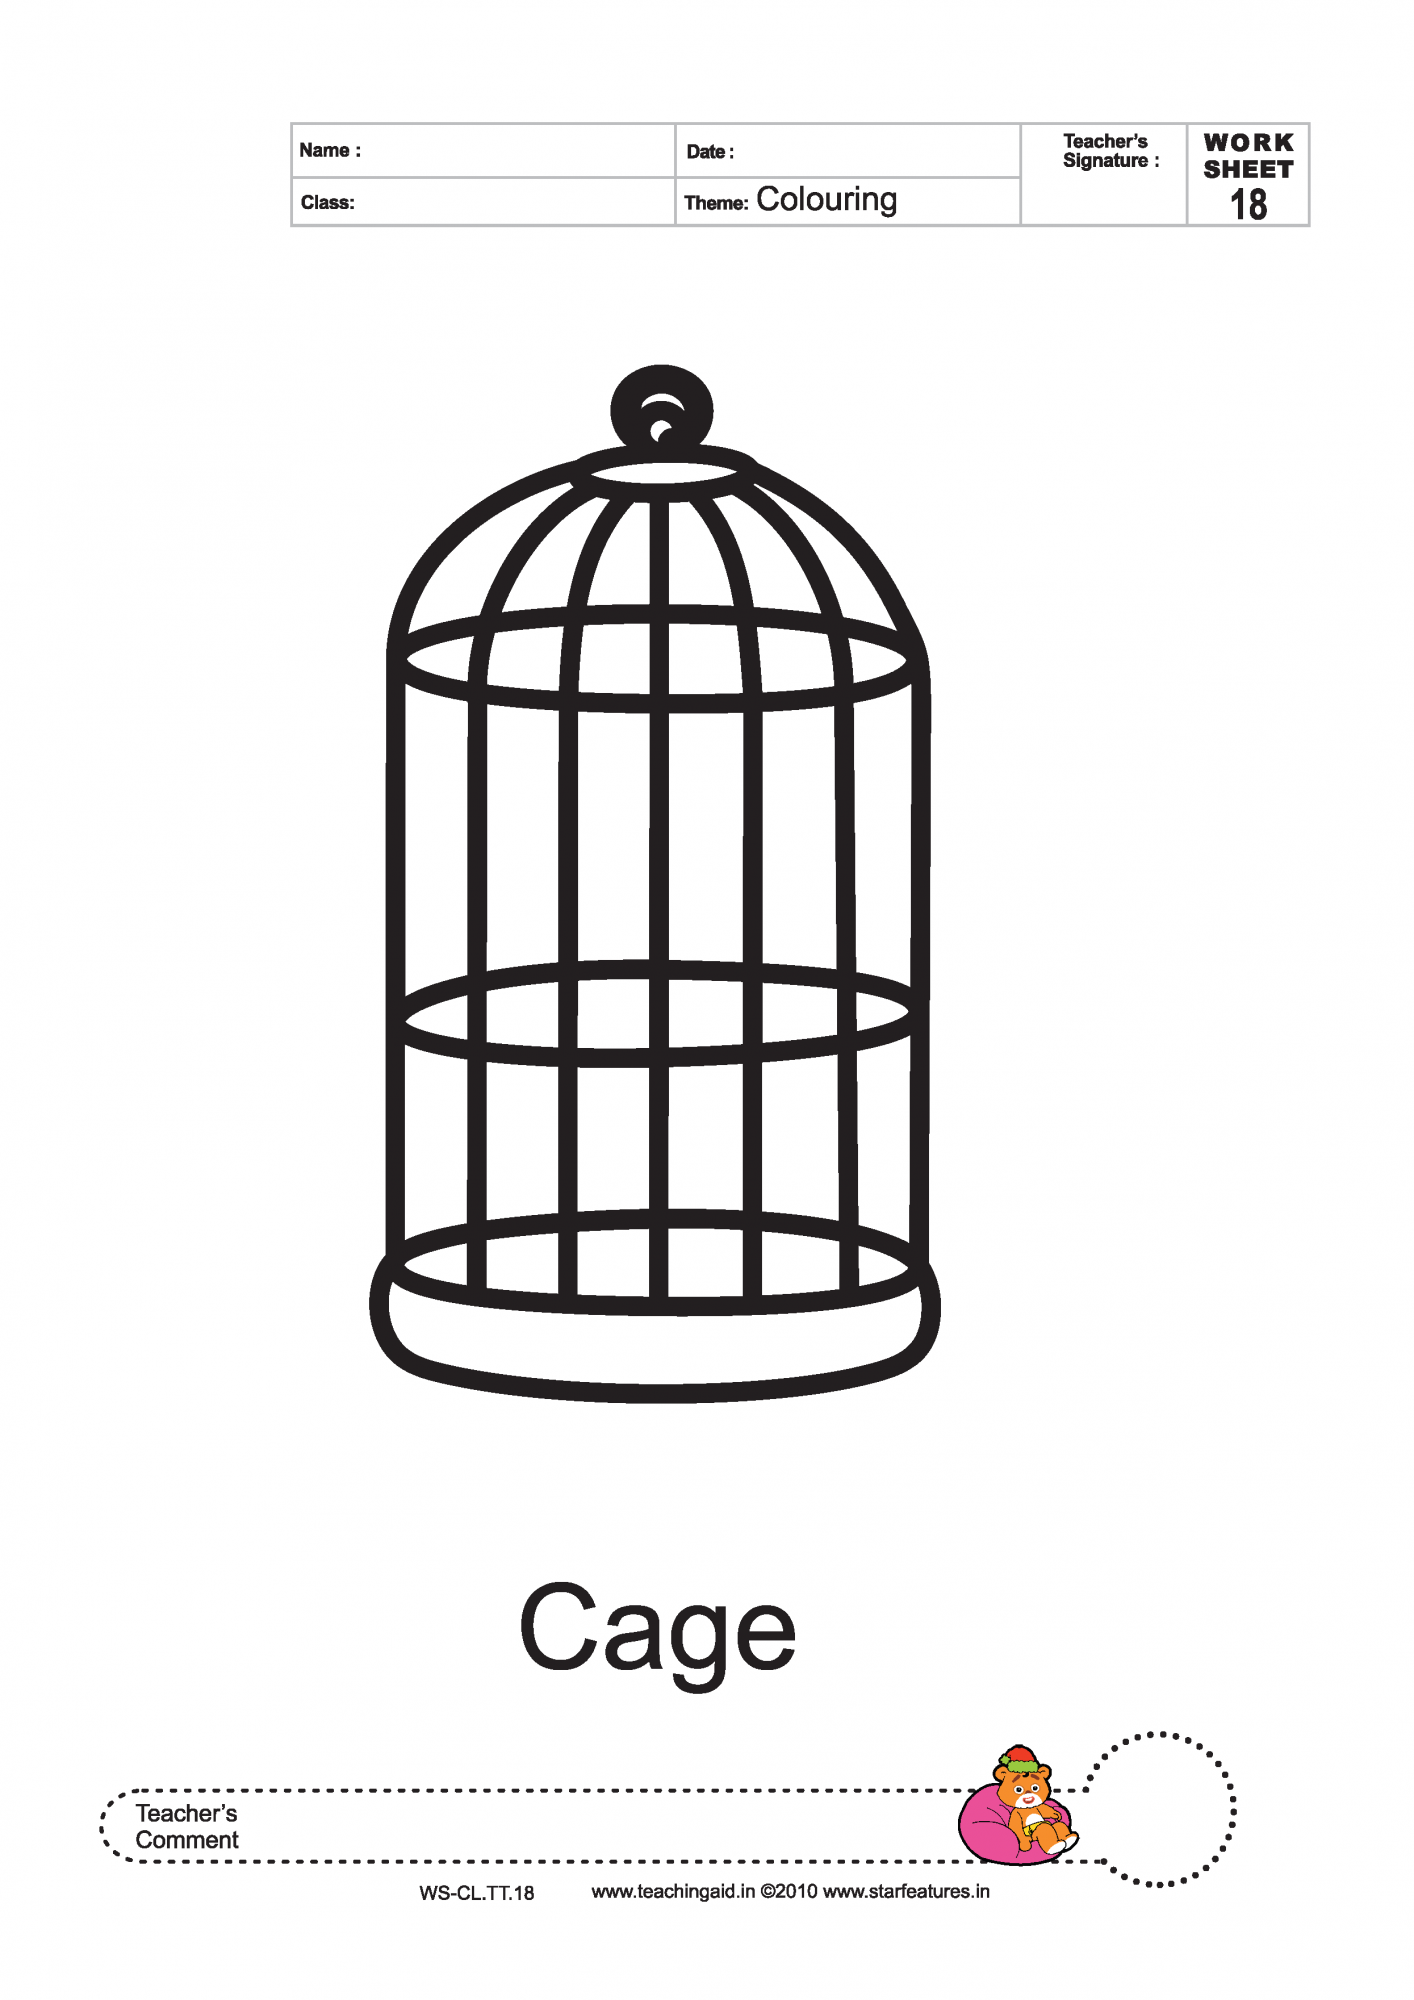 Cage coloring #2, Download drawings